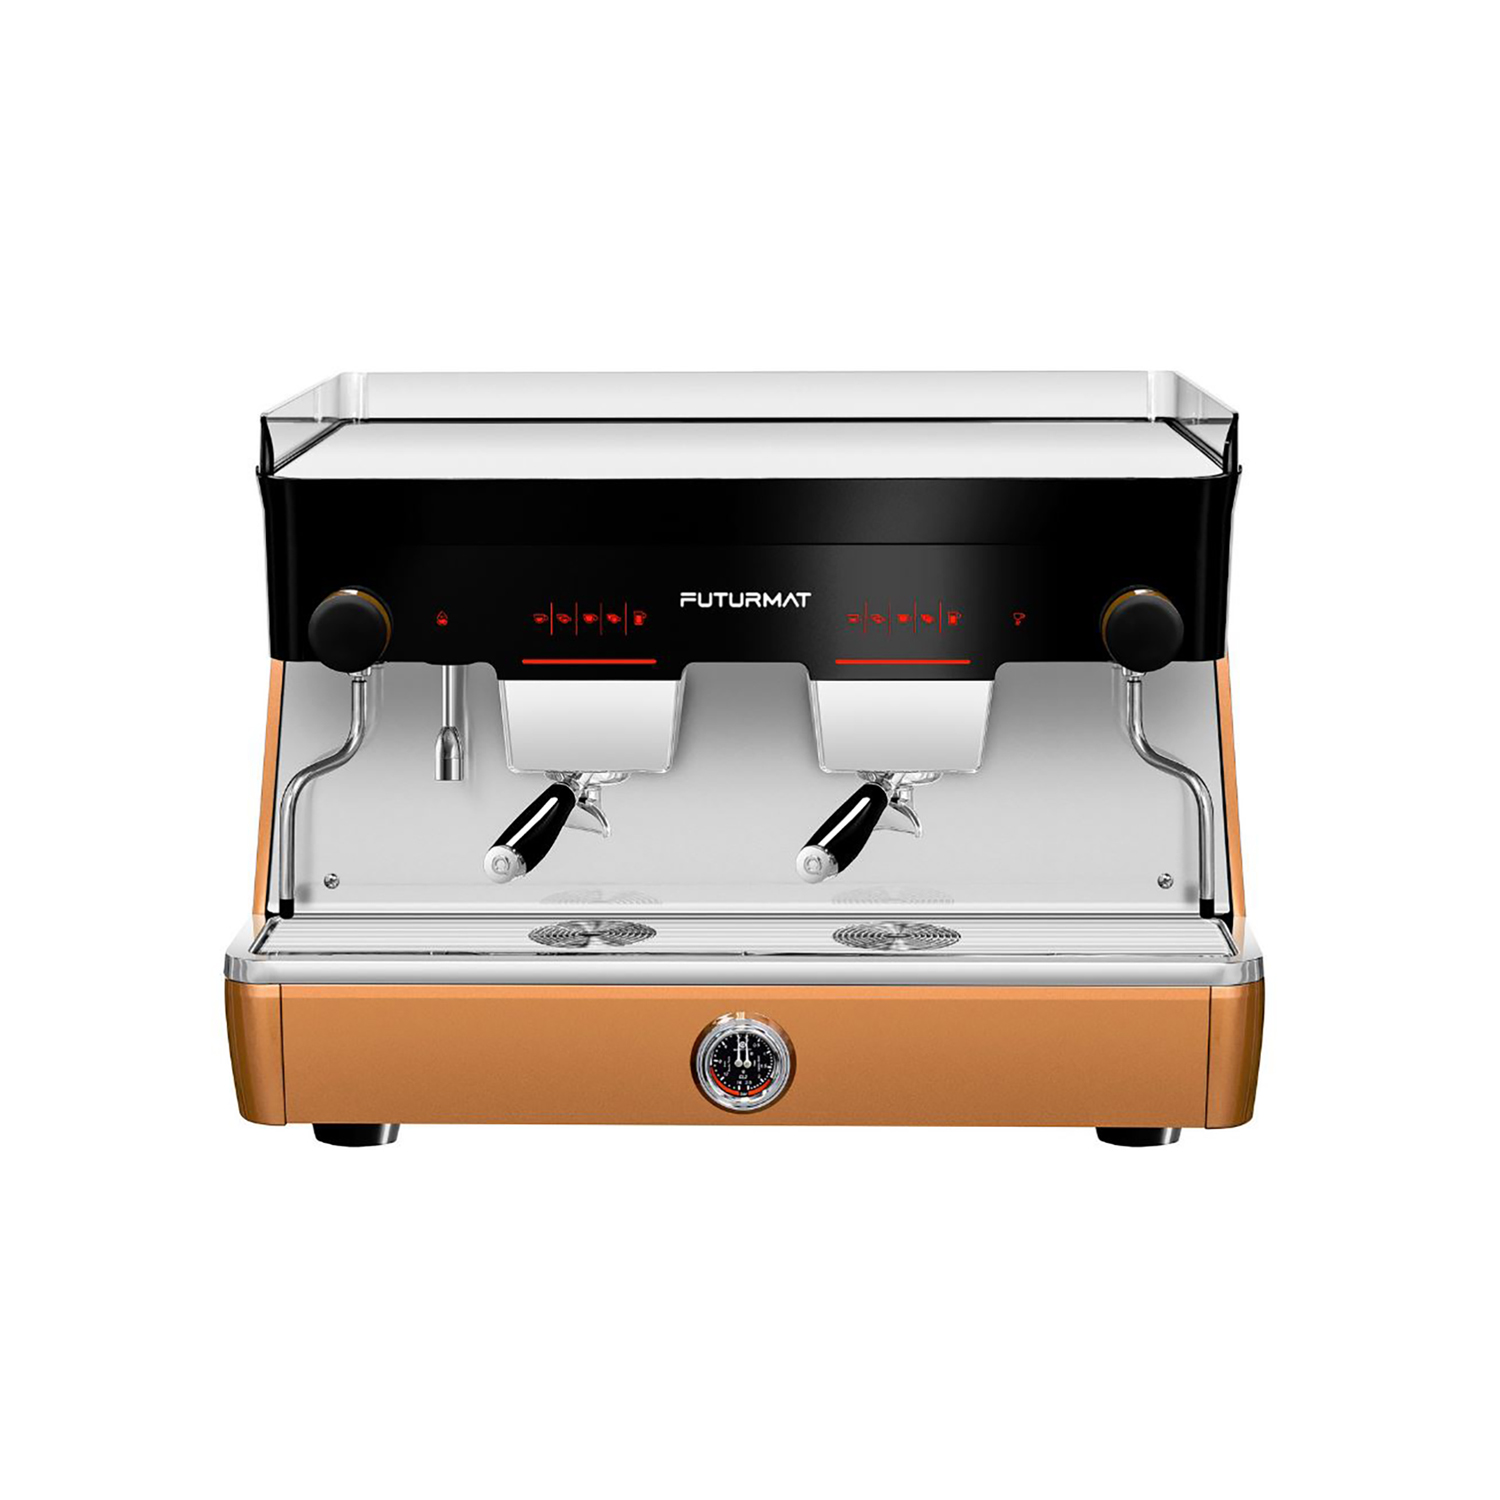 Industrial design and engineering for Quality Espresso coffee machine: Futurmat F3